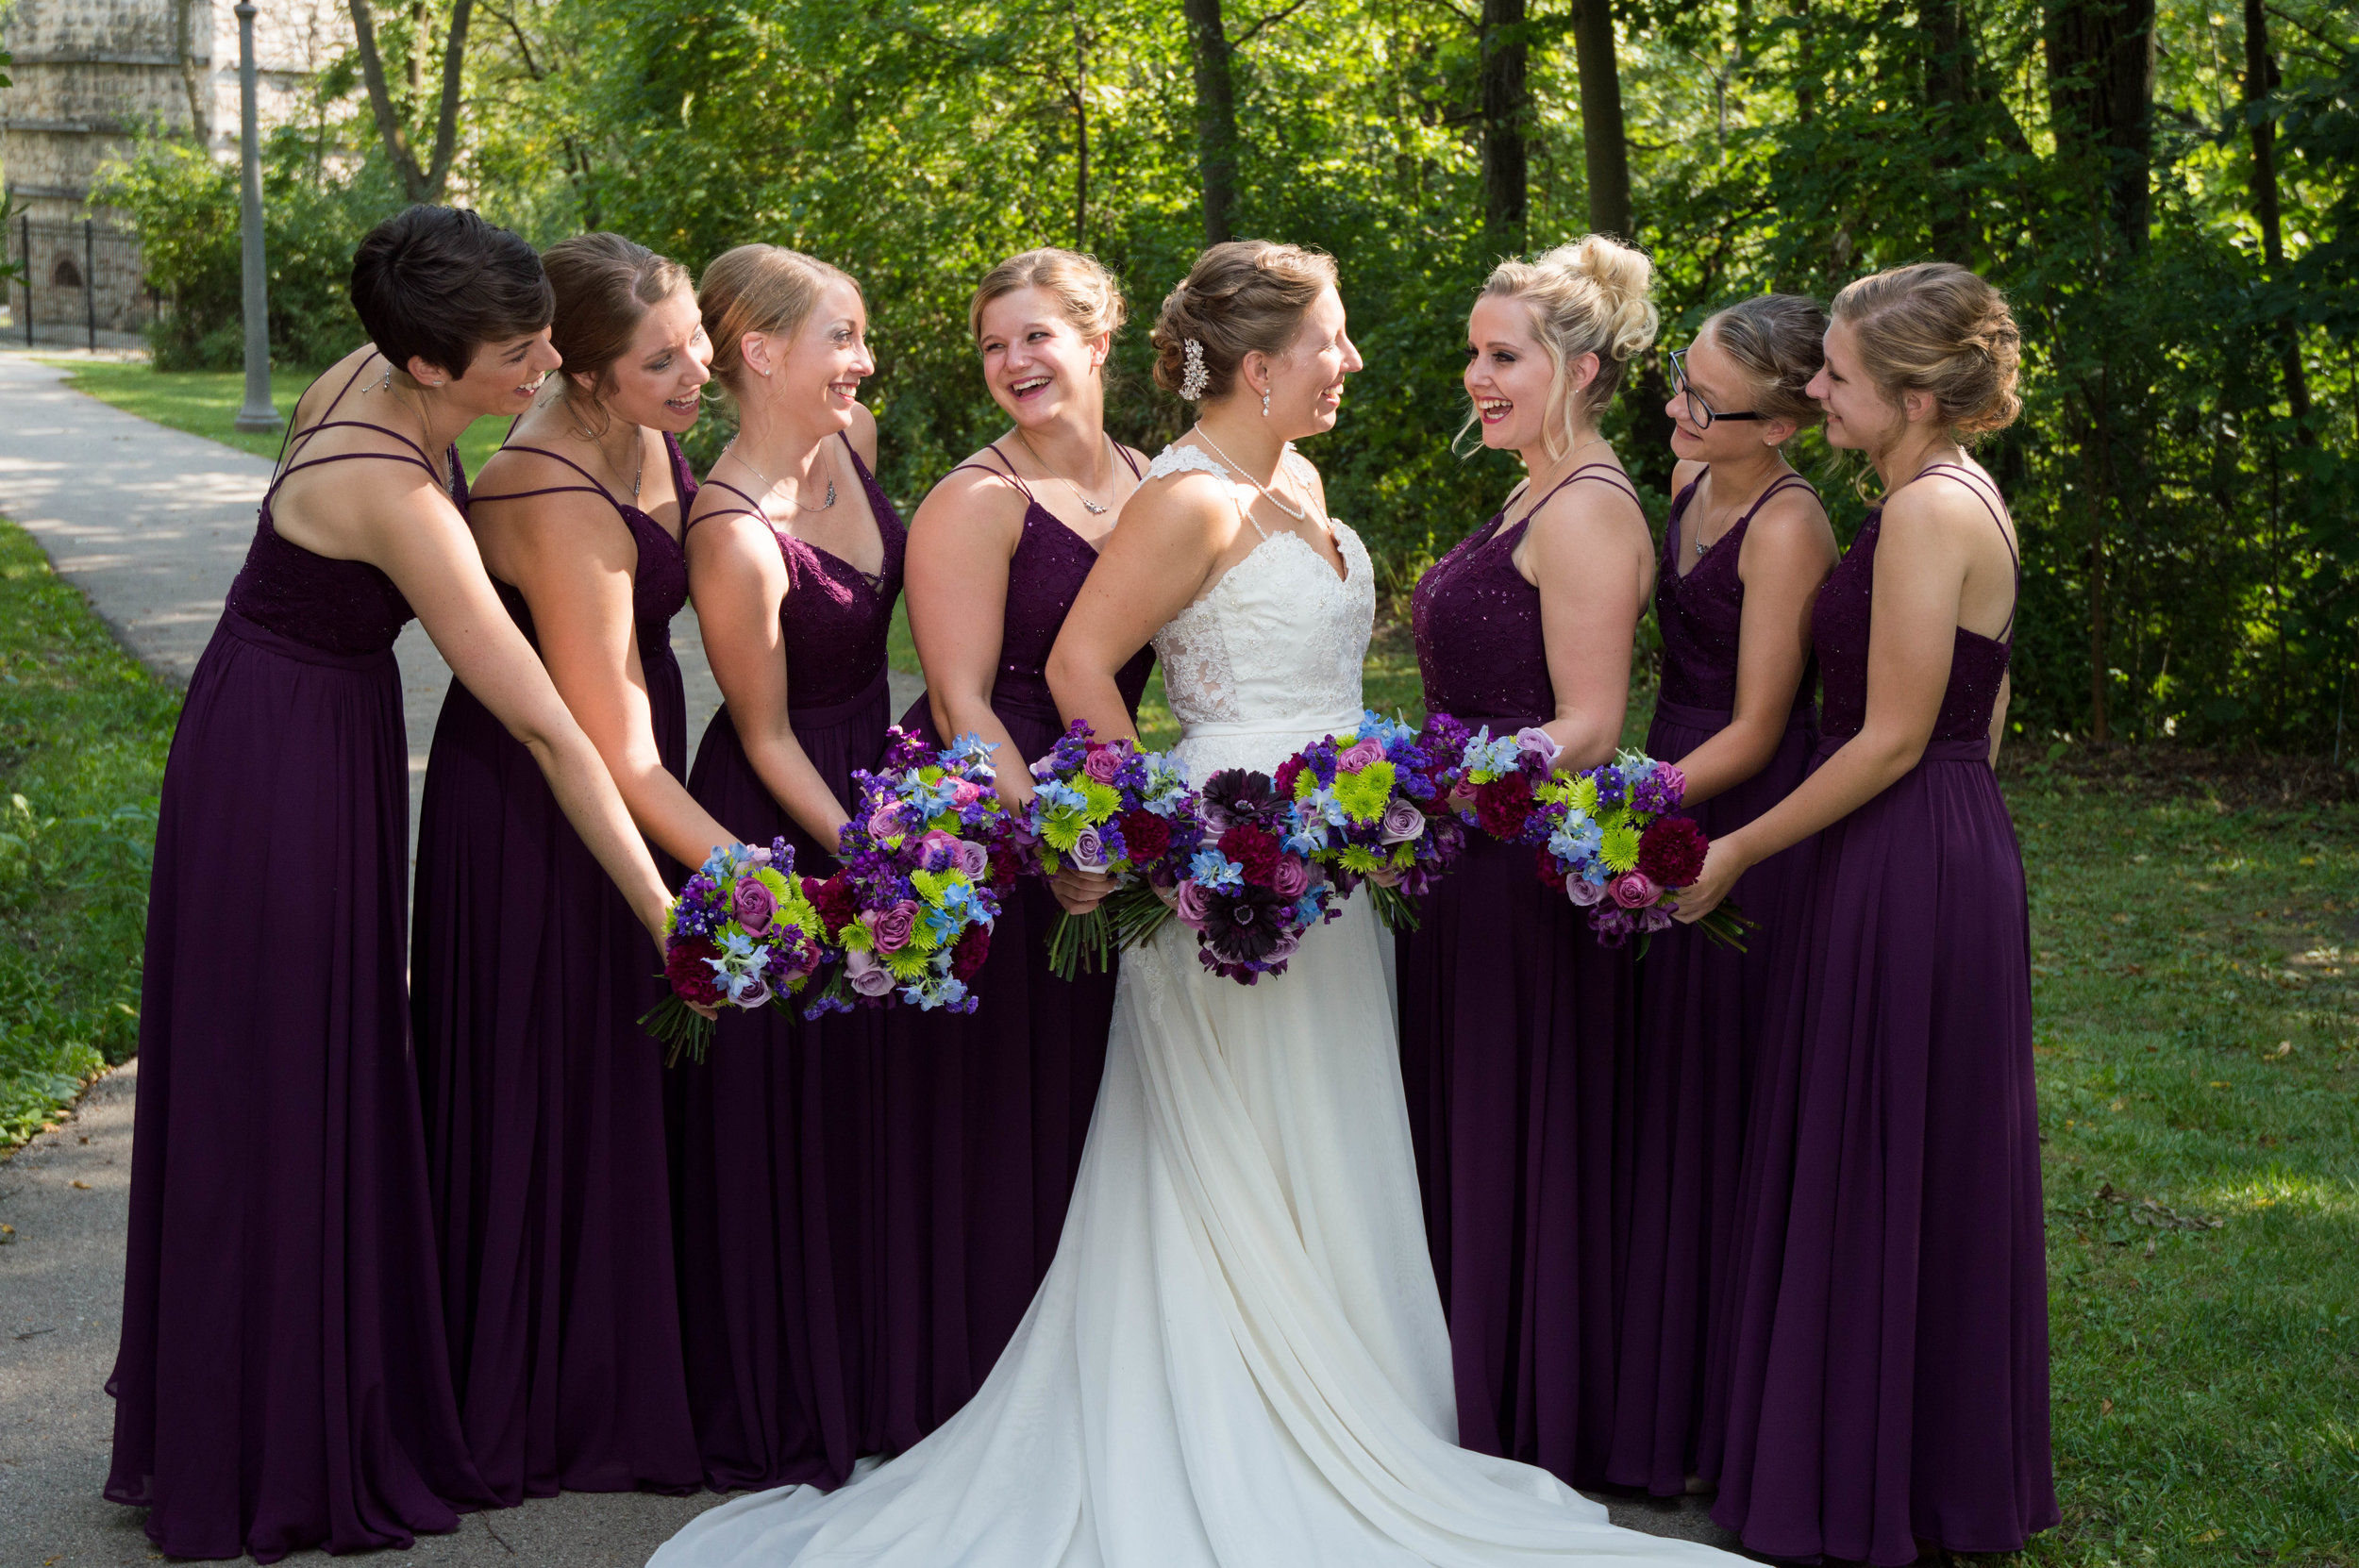 Wisconsin Wedding Photographer, Destination Wedding Photographer, Vanessa Jordan Weddings